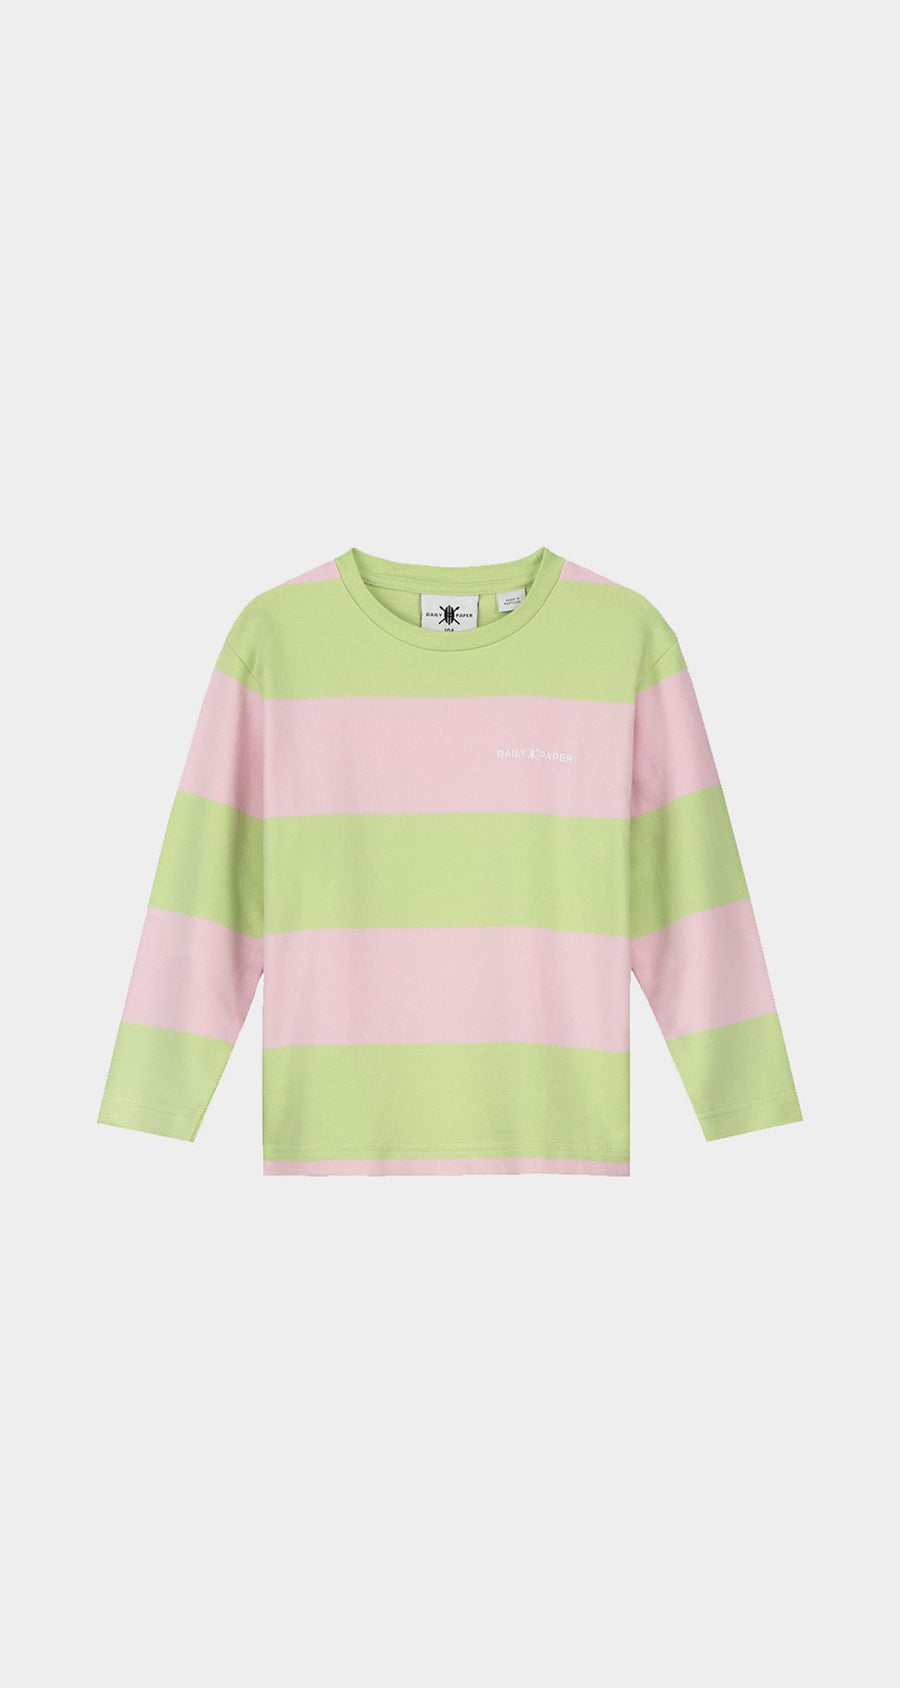 Daily Paper - Patina Green Striped Kids Longsleeve Front